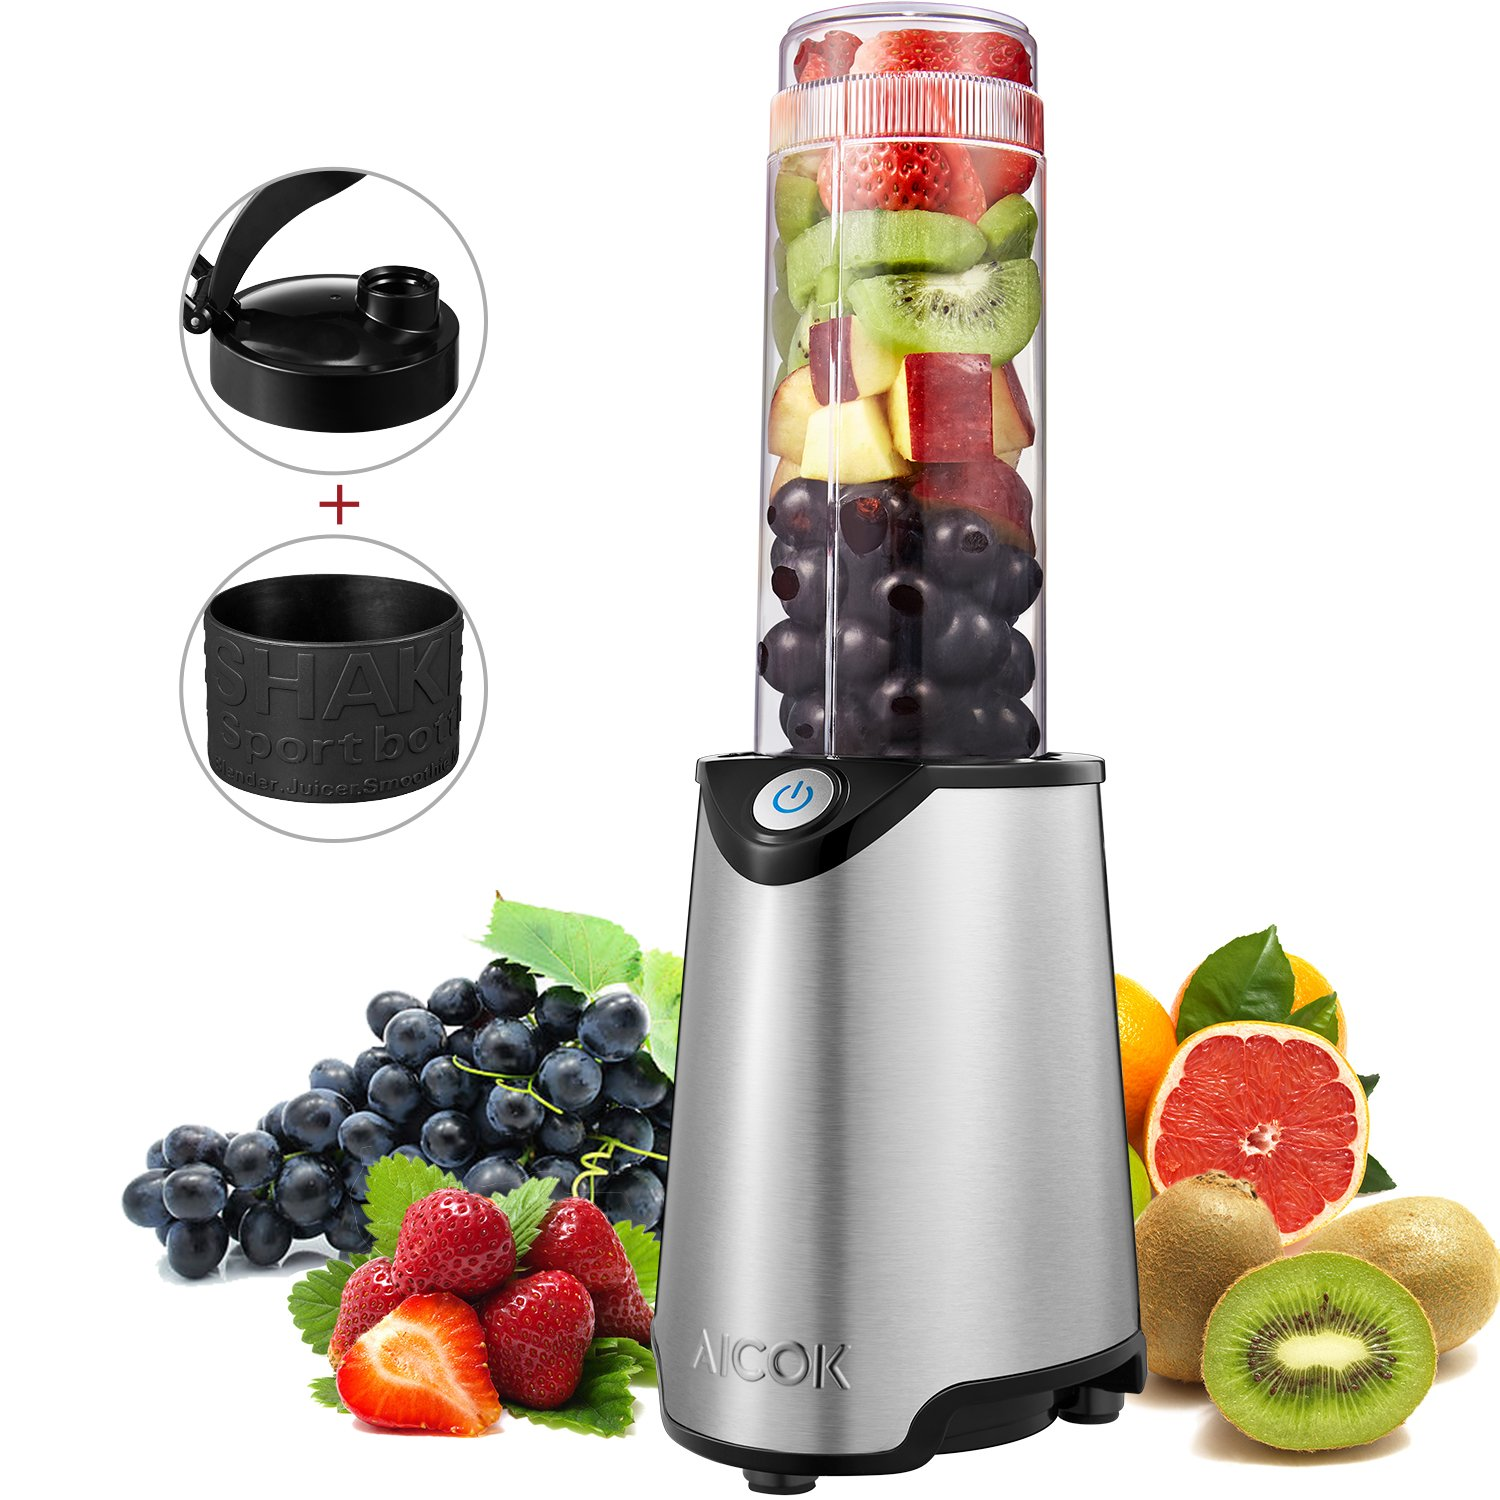 Aicok Personal Blender, Mini Smoothie Blender, Stainless Steel Single Serve Blender, Smoothie Maker with Travel Sport Bottle Lid and Tritan BPA-Free Cup, 300W, Silver